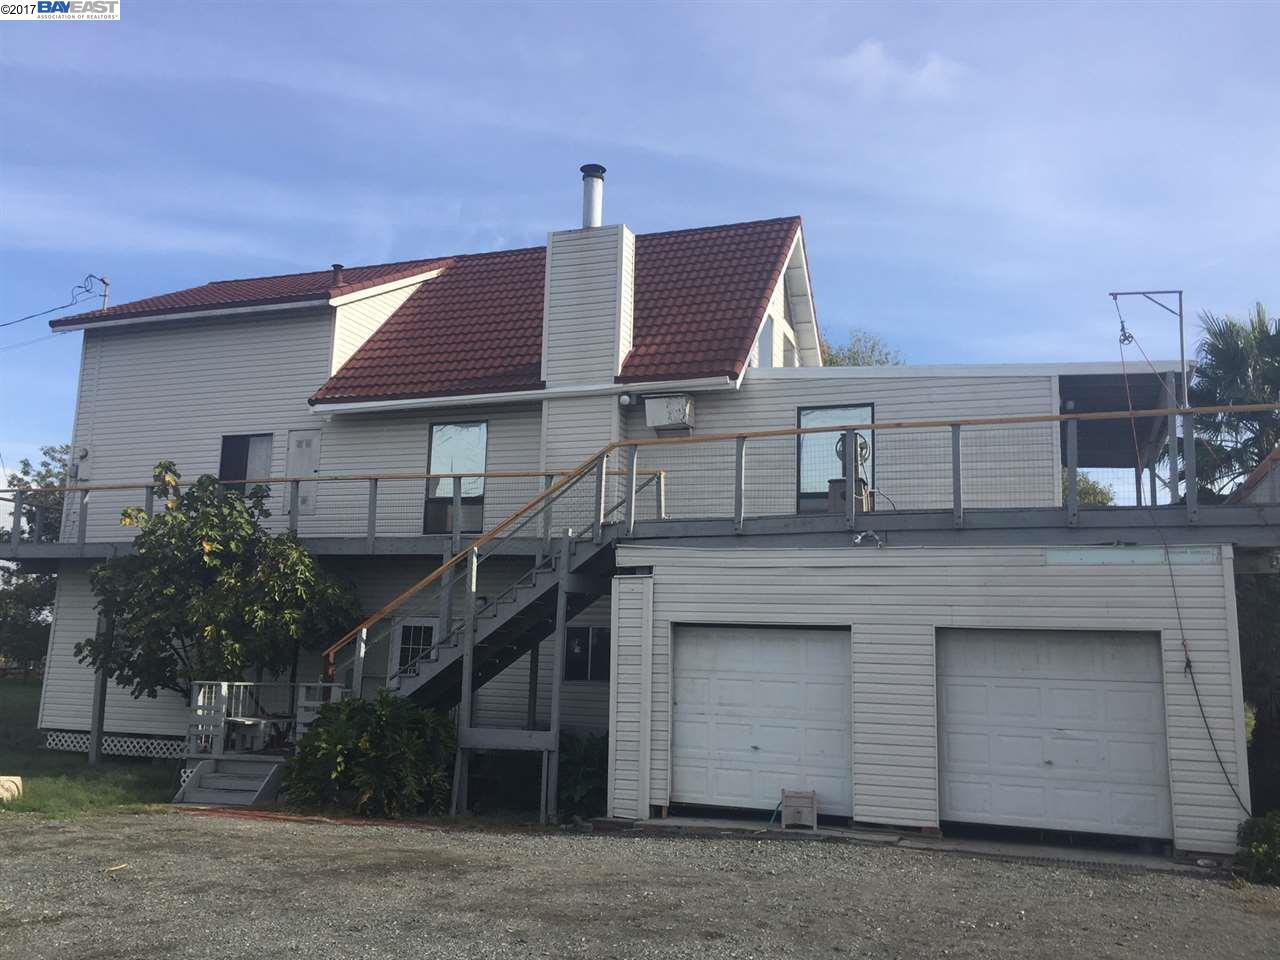 Single Family Home for Sale at 1693 Taylor Blvd 1693 Taylor Blvd Bethel Island, California 94549 United States